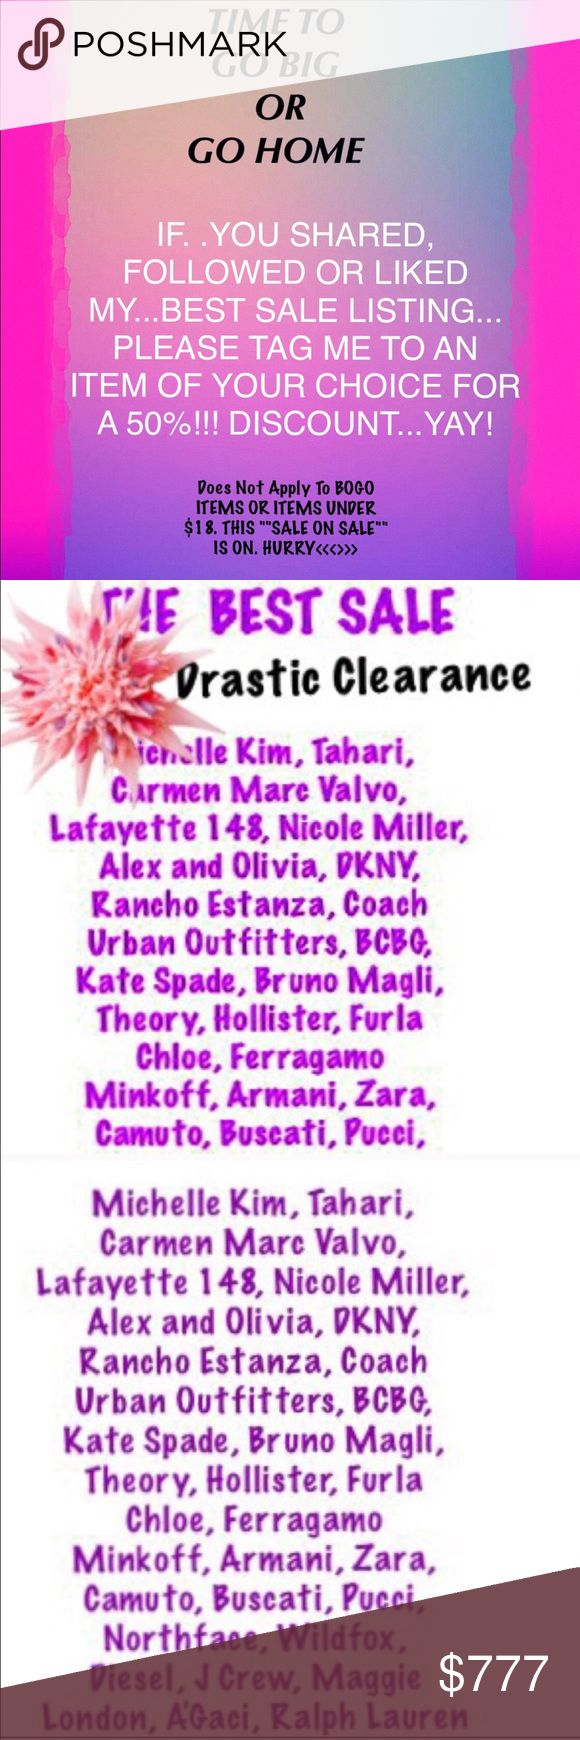 50% 0ff SALE/NOT included BoGo Or items under $18 I will need to change price for you to receive 50% off. Tag me to the item you want. ⚫️This sale does not apply to BOGO or any single item under $18? MAKE AN OFFER!  ⚫️I have loads of beautiful designer clothes, shoes and bags that I am delighted to share with you. New listings added every day. Please don't wait. This 50% off sale will last ????? 🥀🥀🥀🥀 50% Off most items! Other